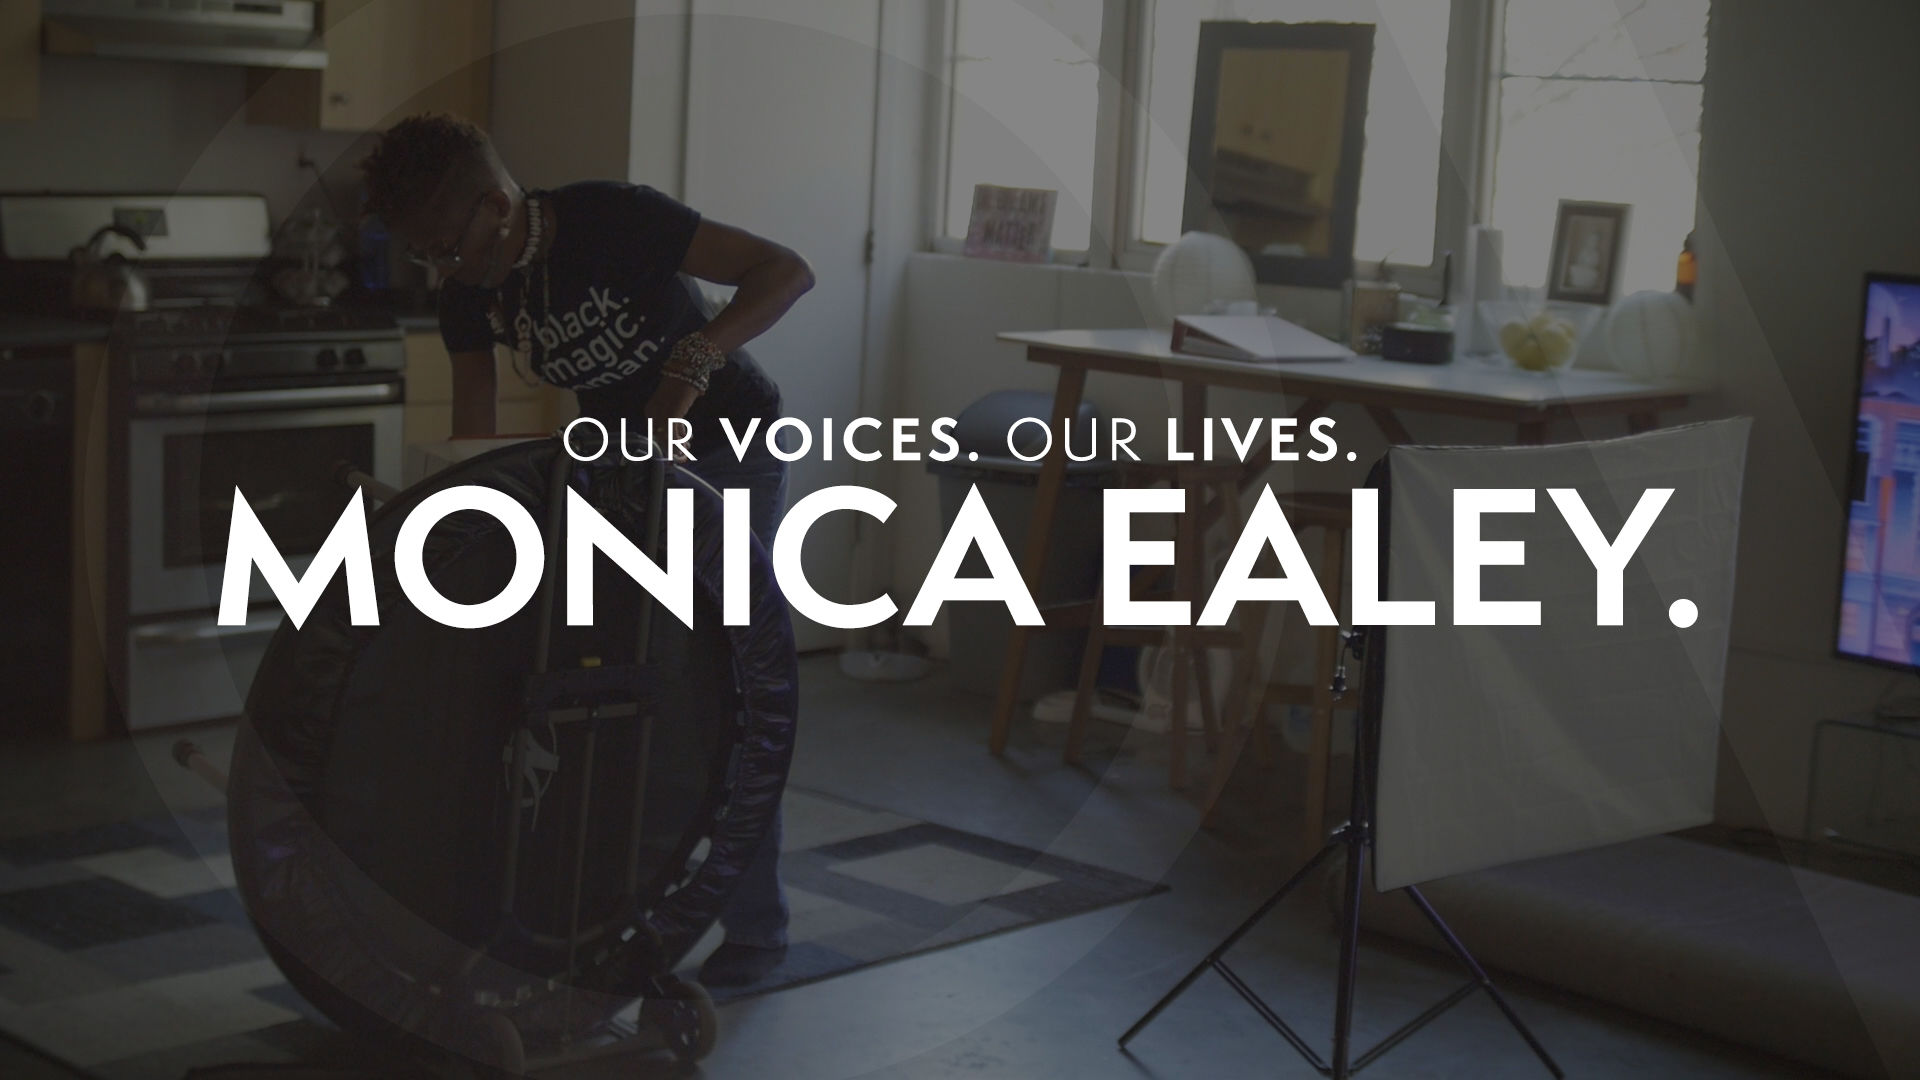 Our Voices. Our Lives. presents MONICA EALEY.